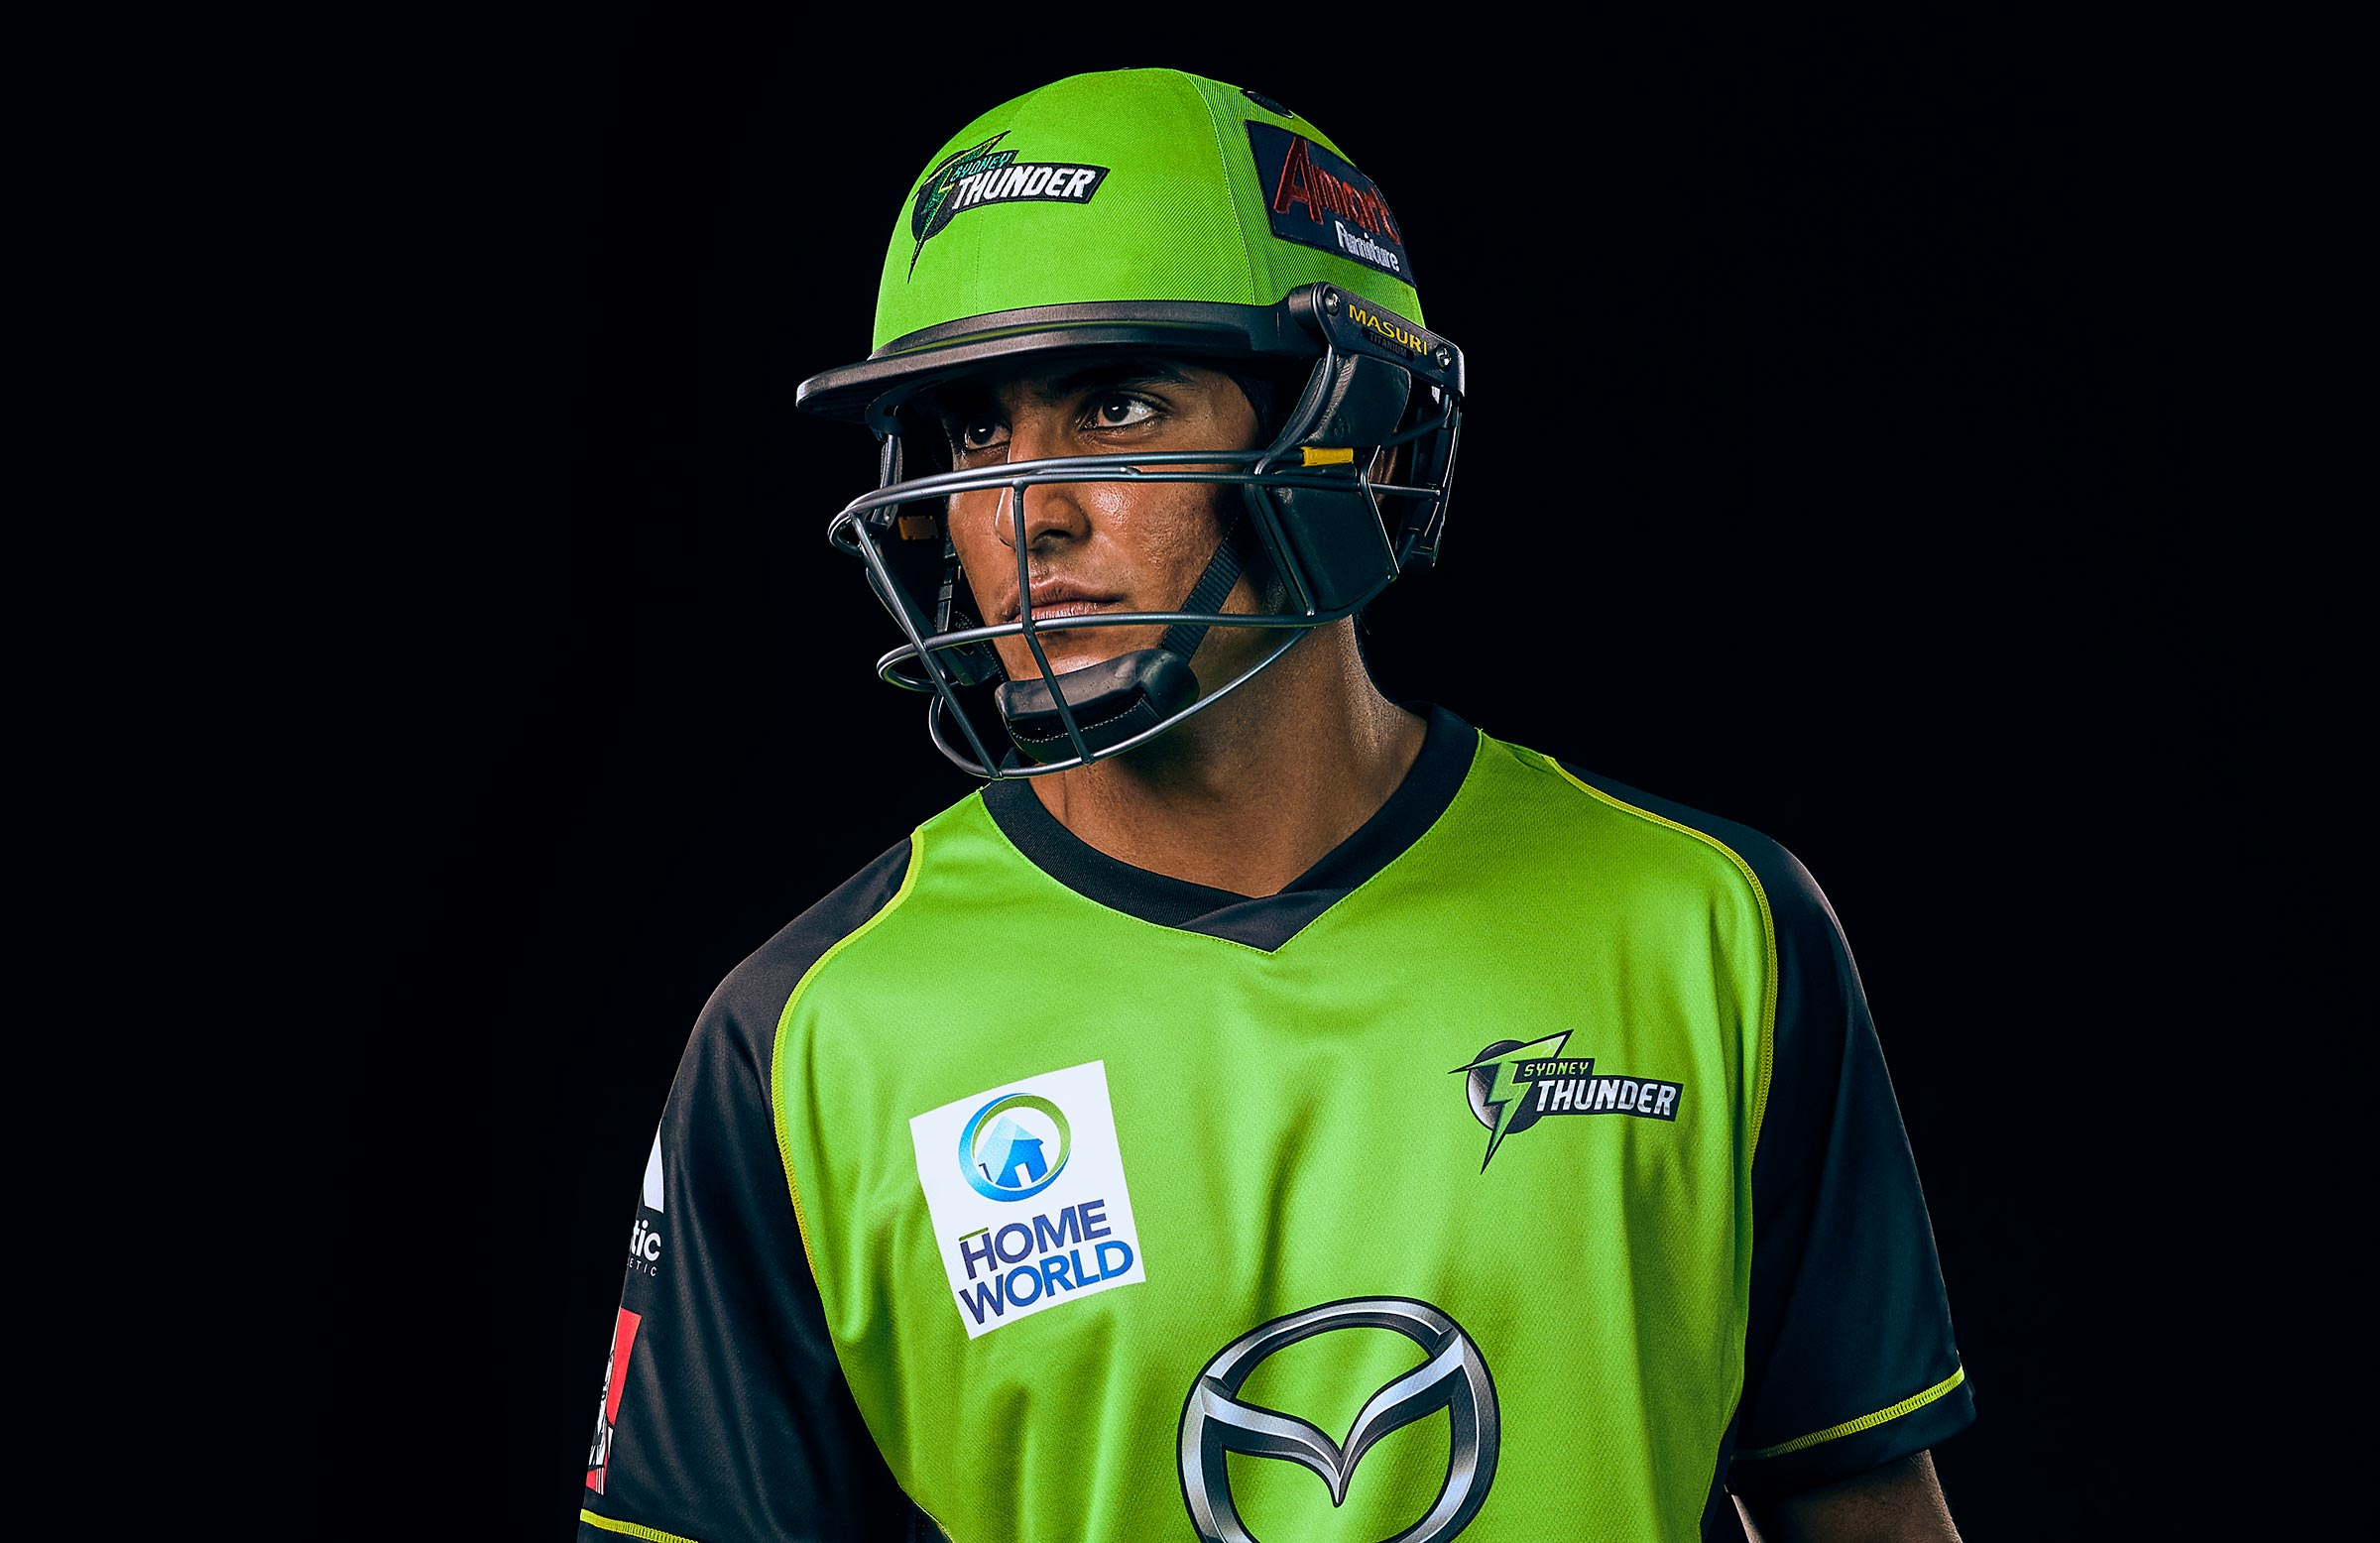 Sangha looking sharp in lime green // Getty